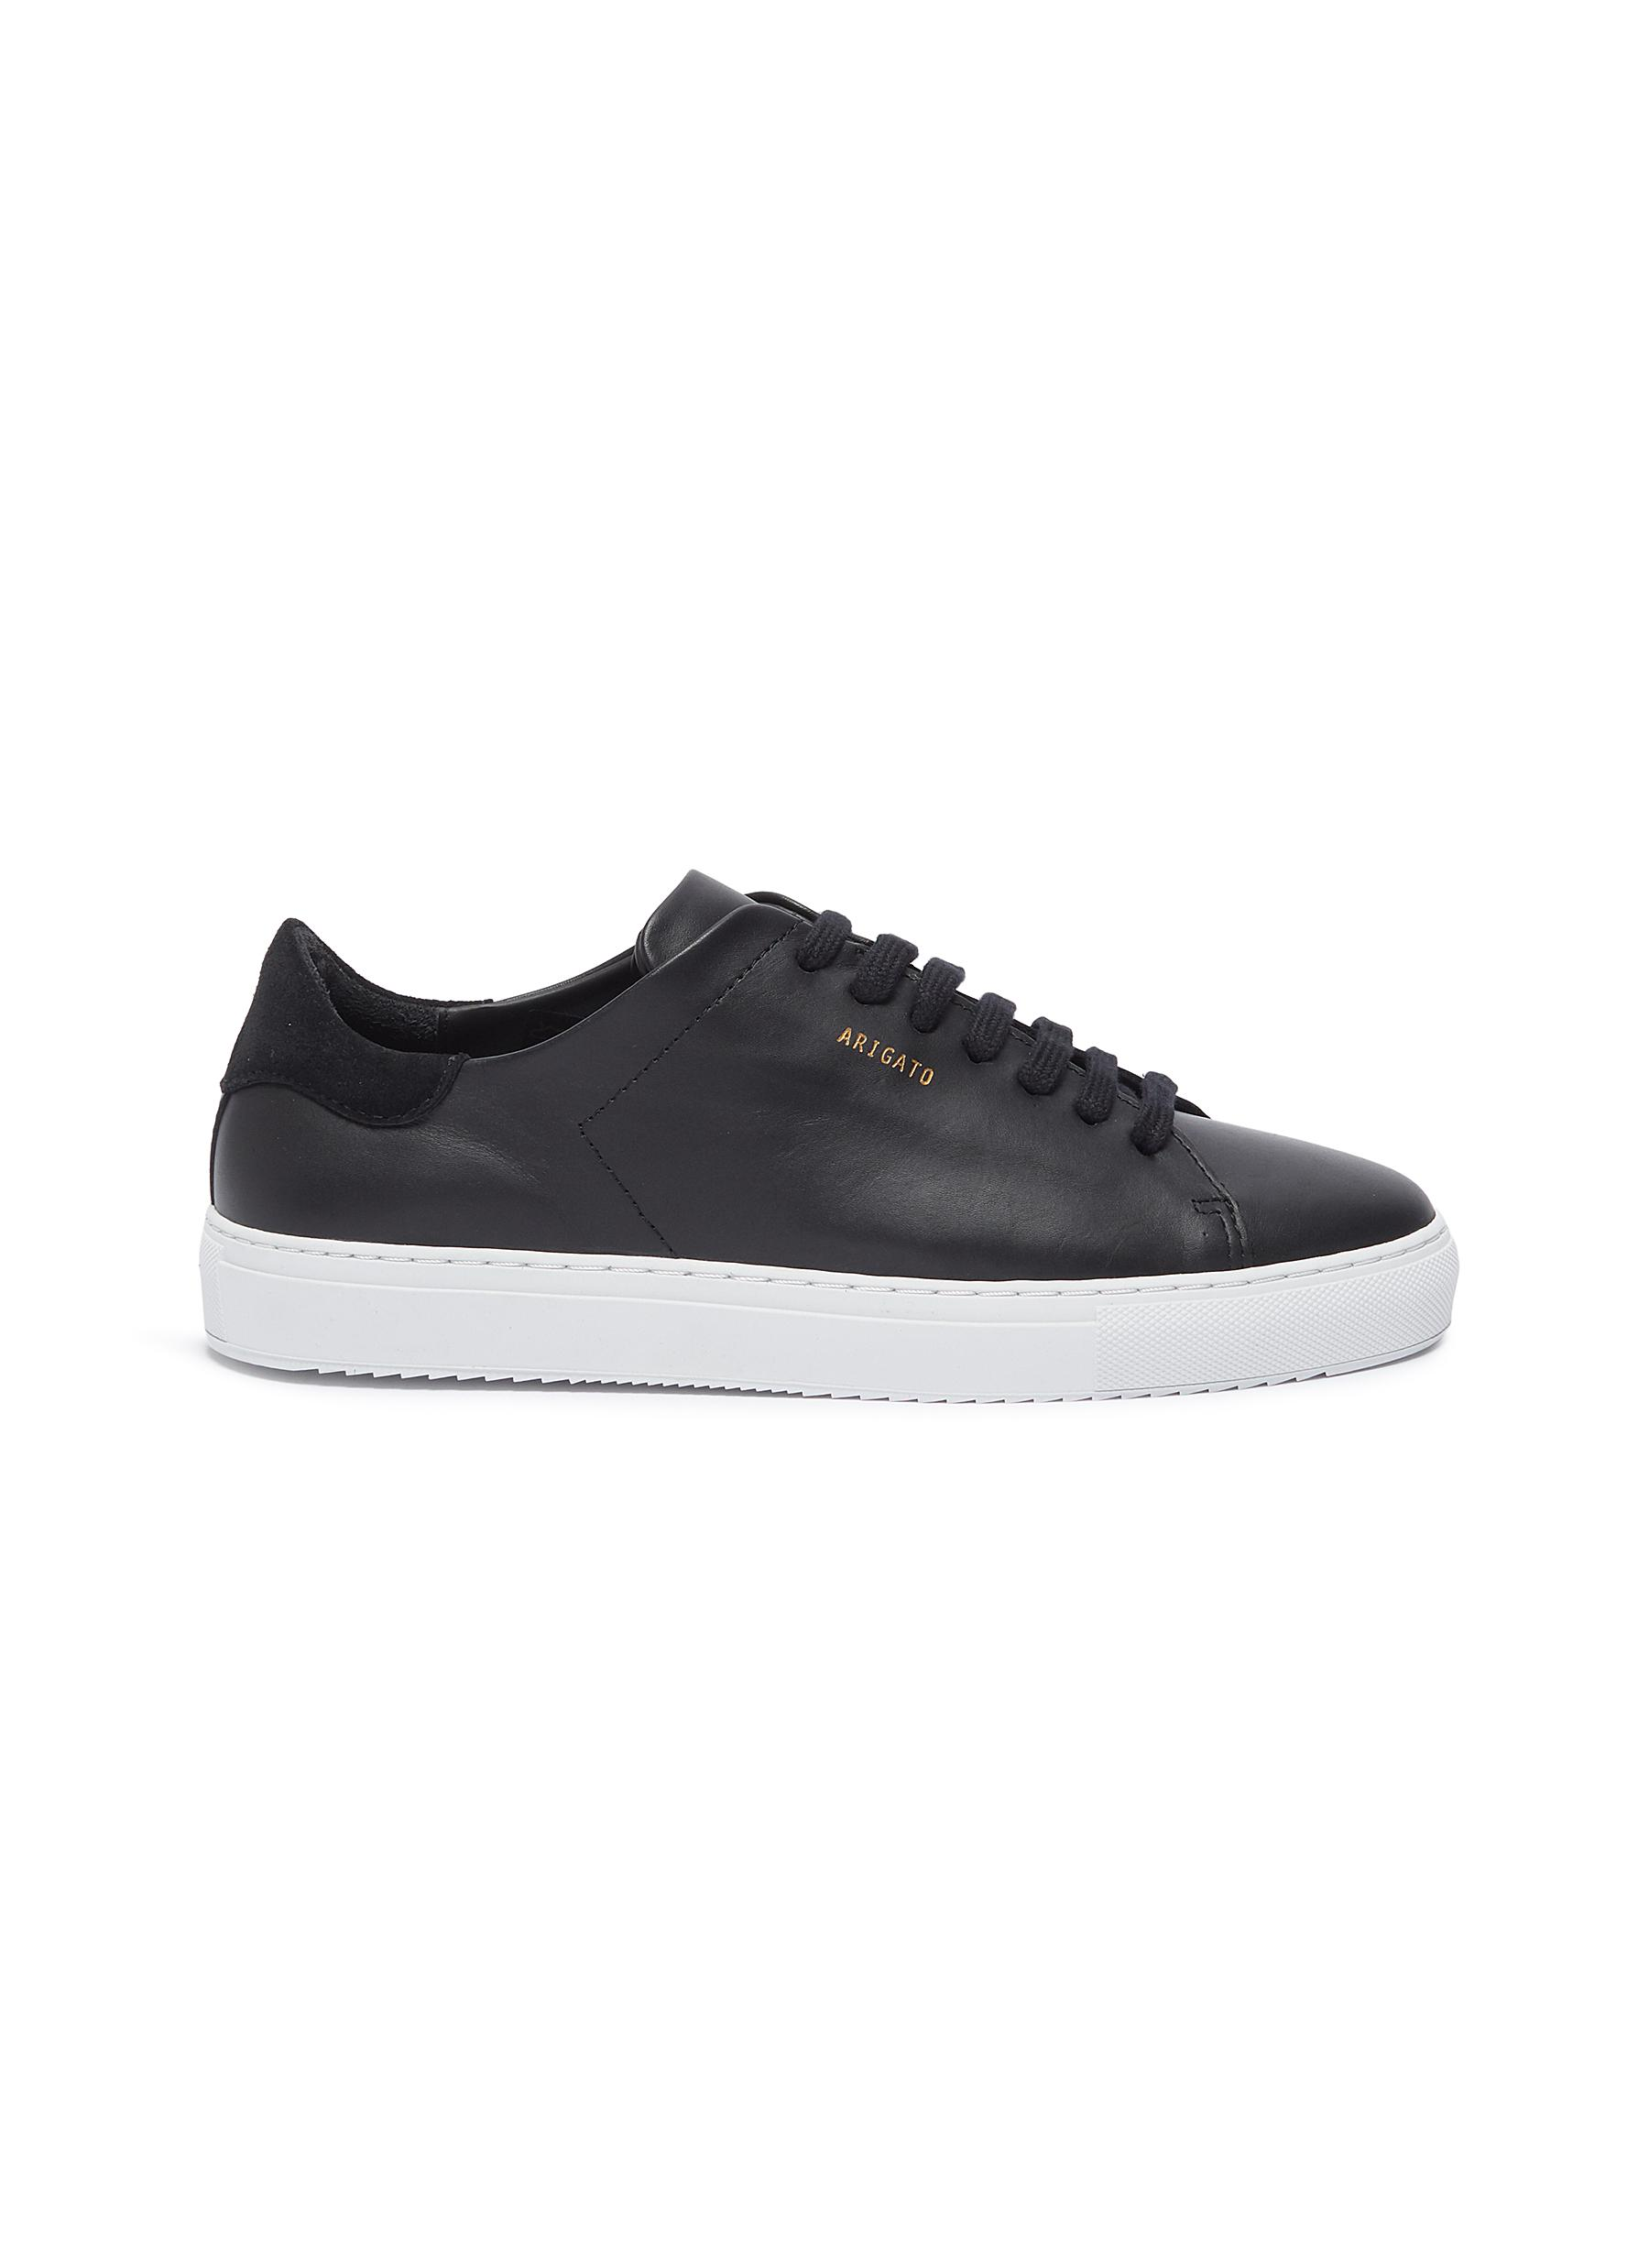 shop Axel Arigato 'Clean 90' suede counter leather sneakers online